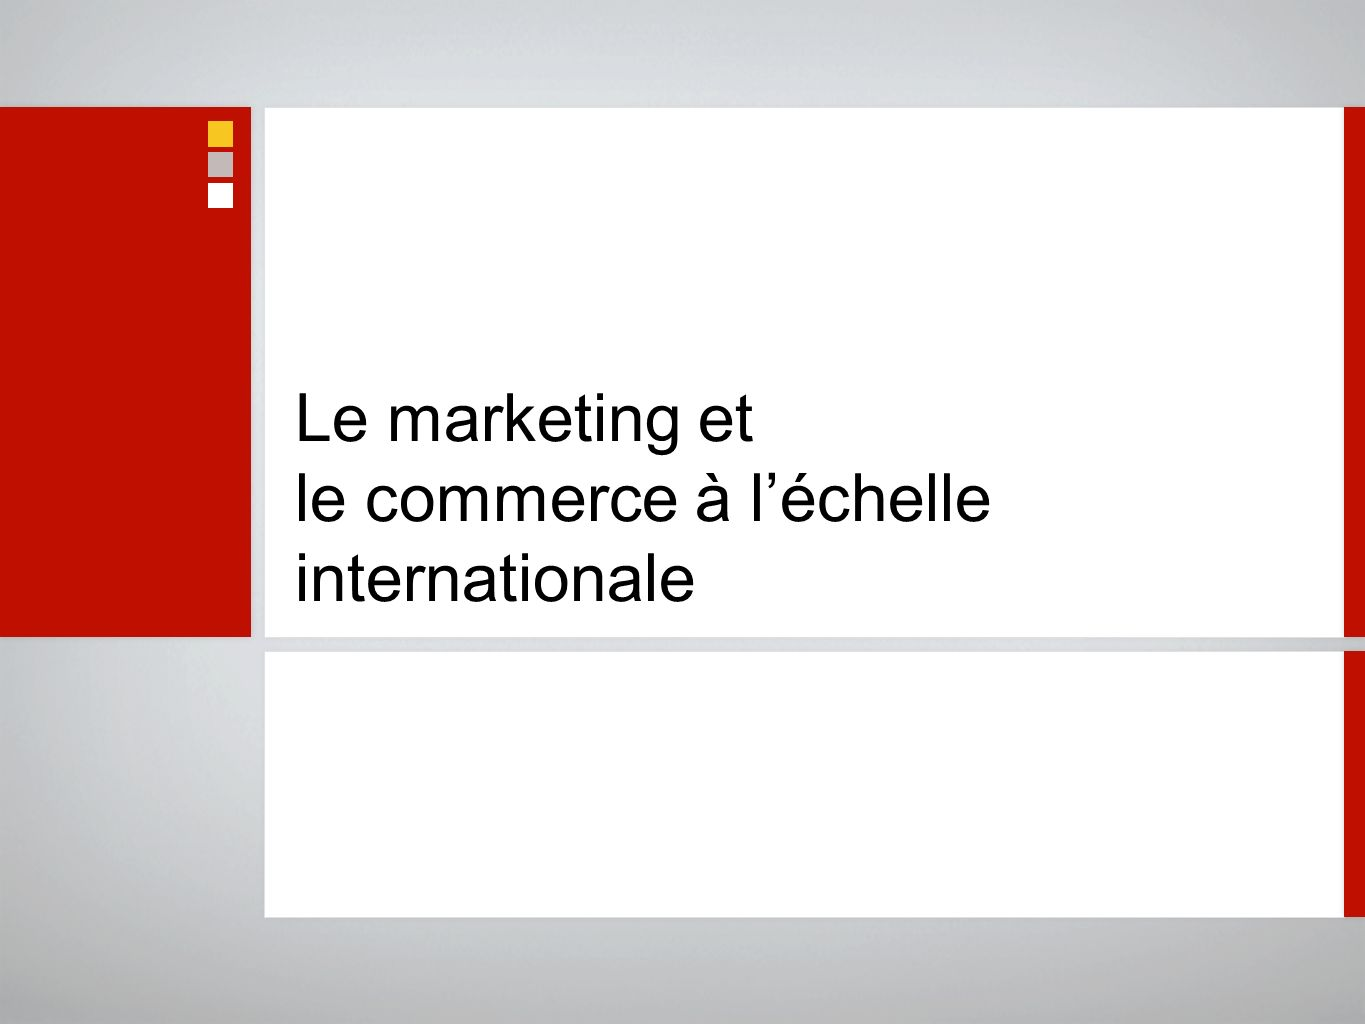 Le marketing et le commerce à l'échelle internationale